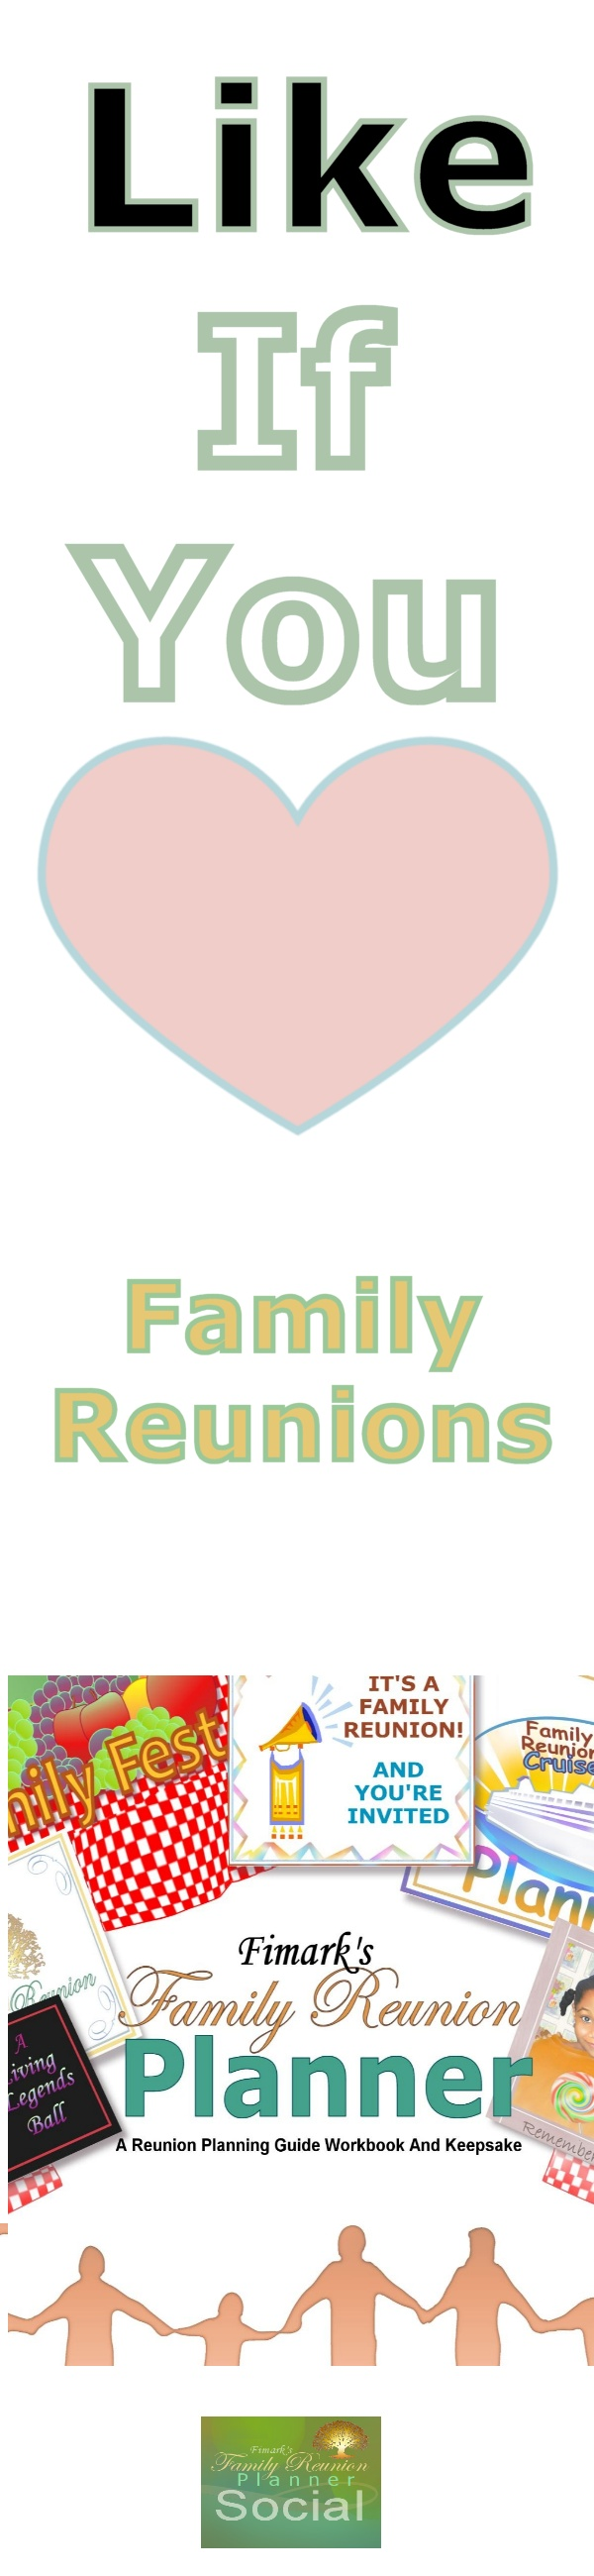 Family Reunion Planning Ideas Tools Tips And Apps